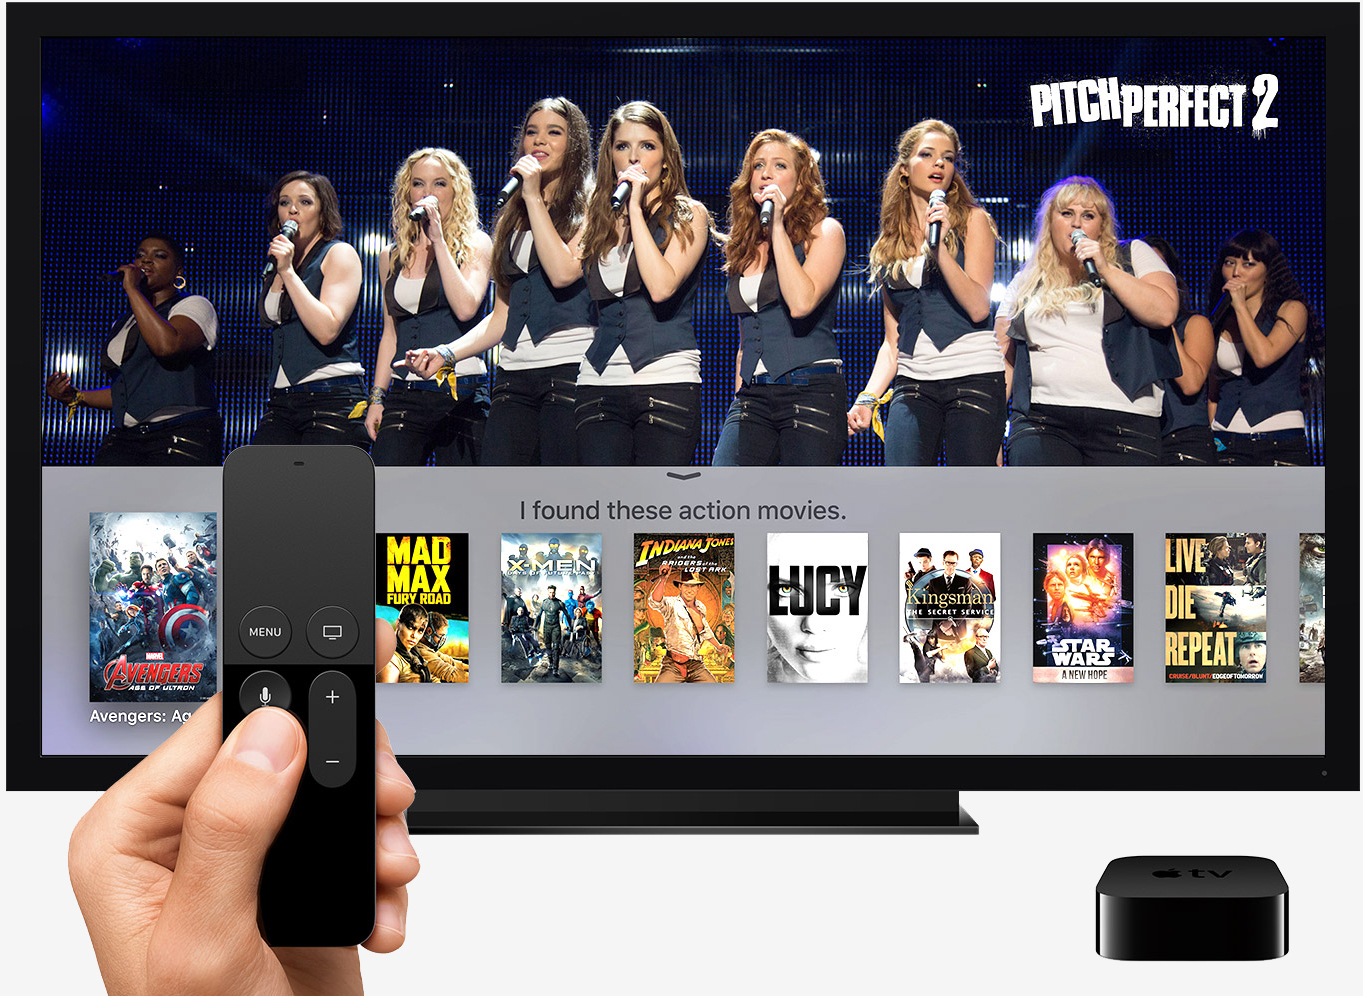 Apple is reportedly budgeting $1 billion to procure and produce original content over the coming year